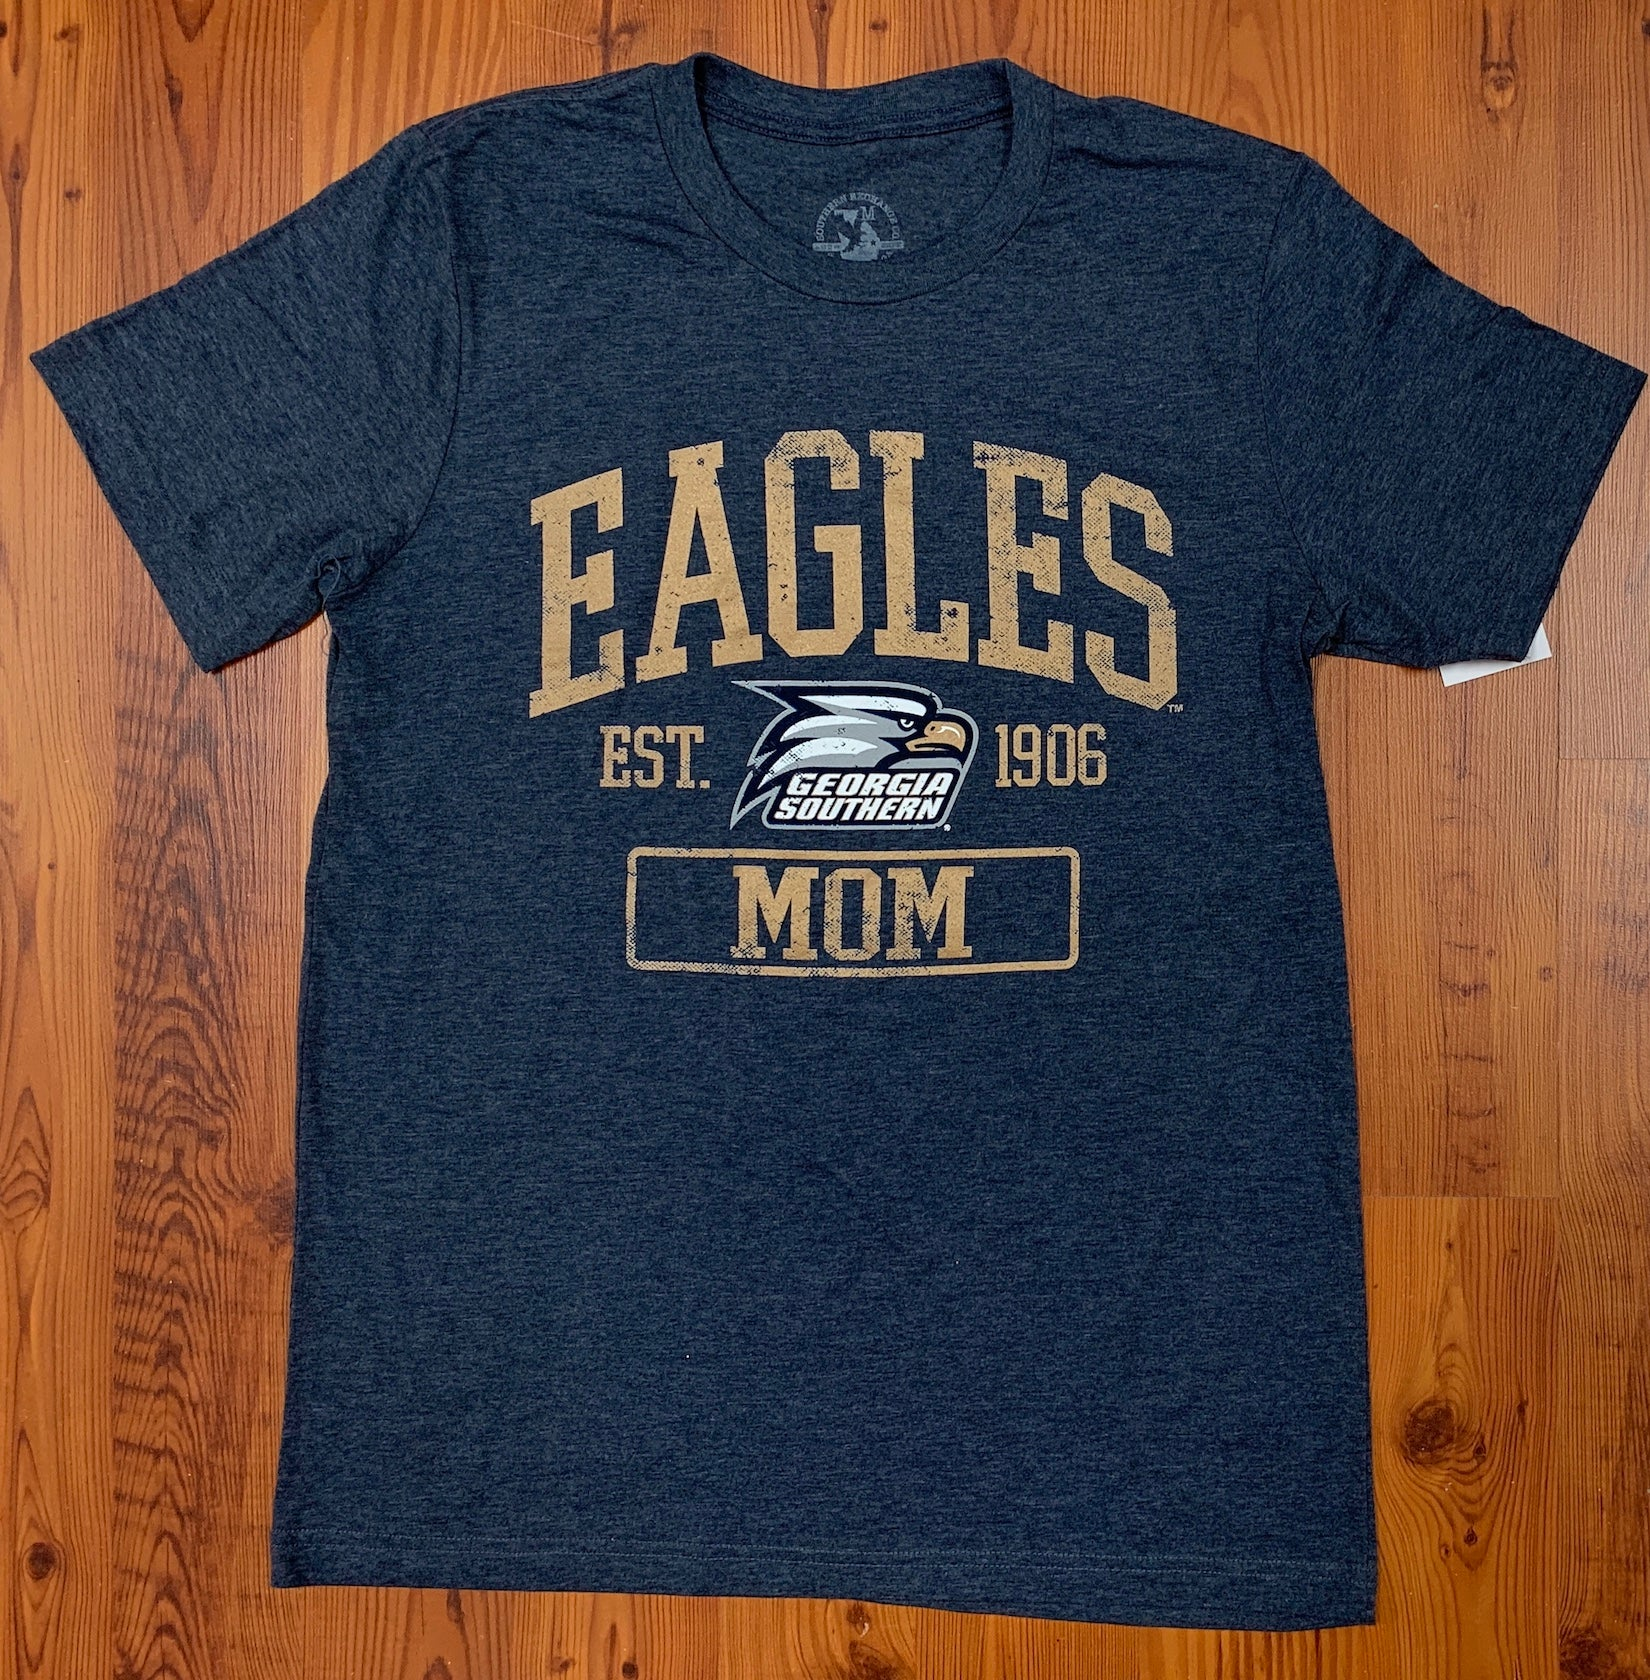 Eagles Mom - Supersoft Heather Navy Tee